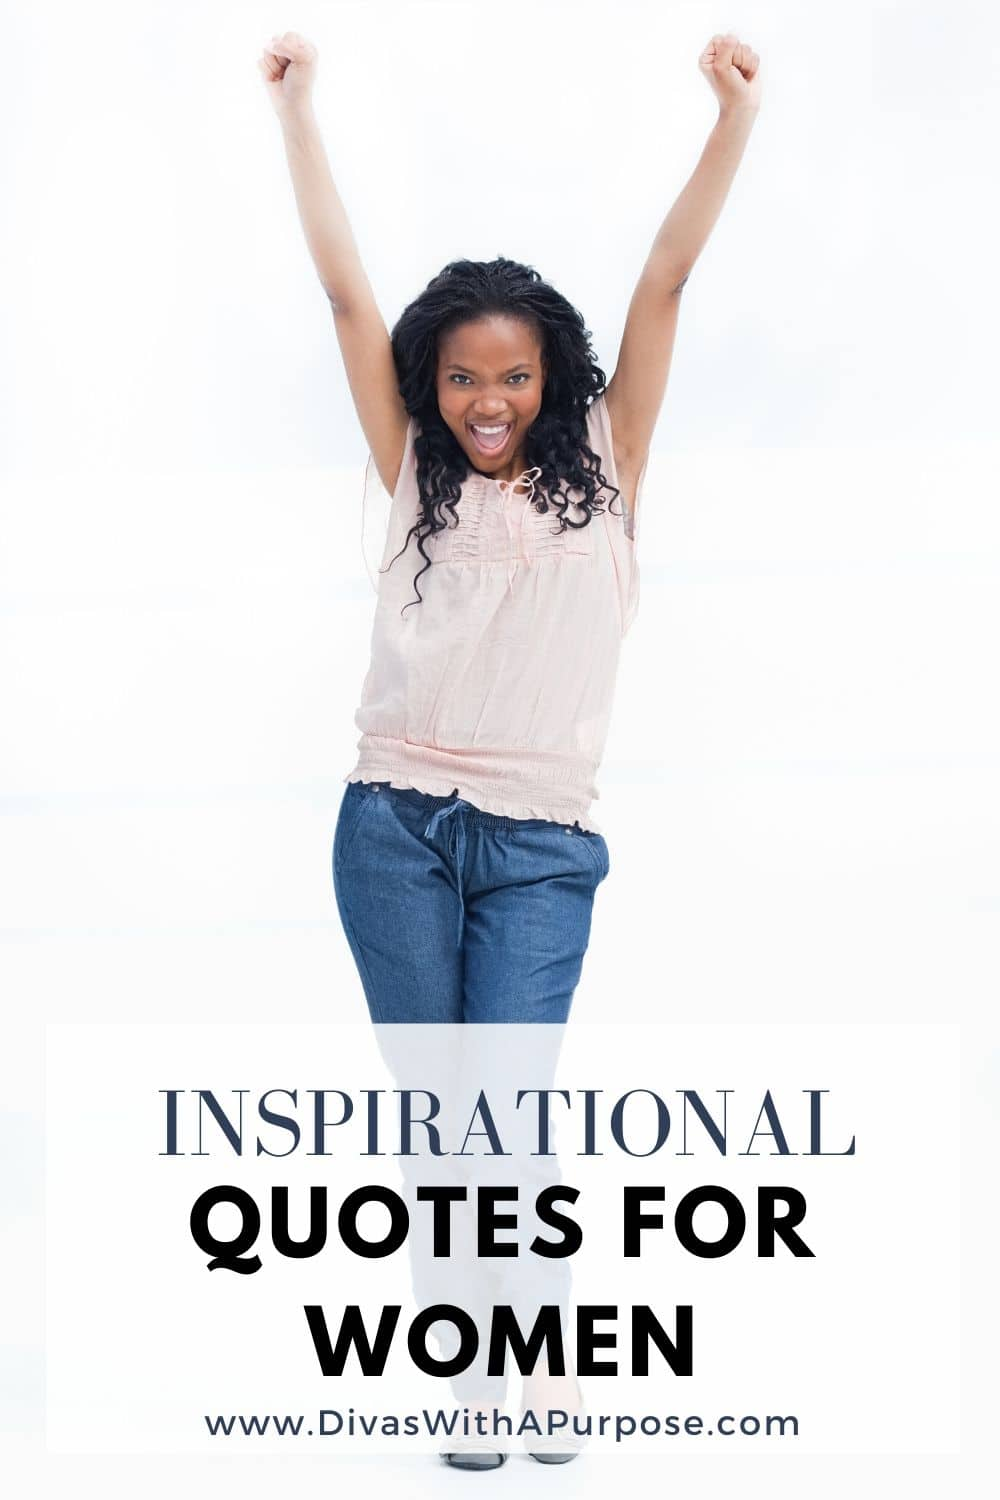 Inspirational Quotes for Women from Inspirational Women